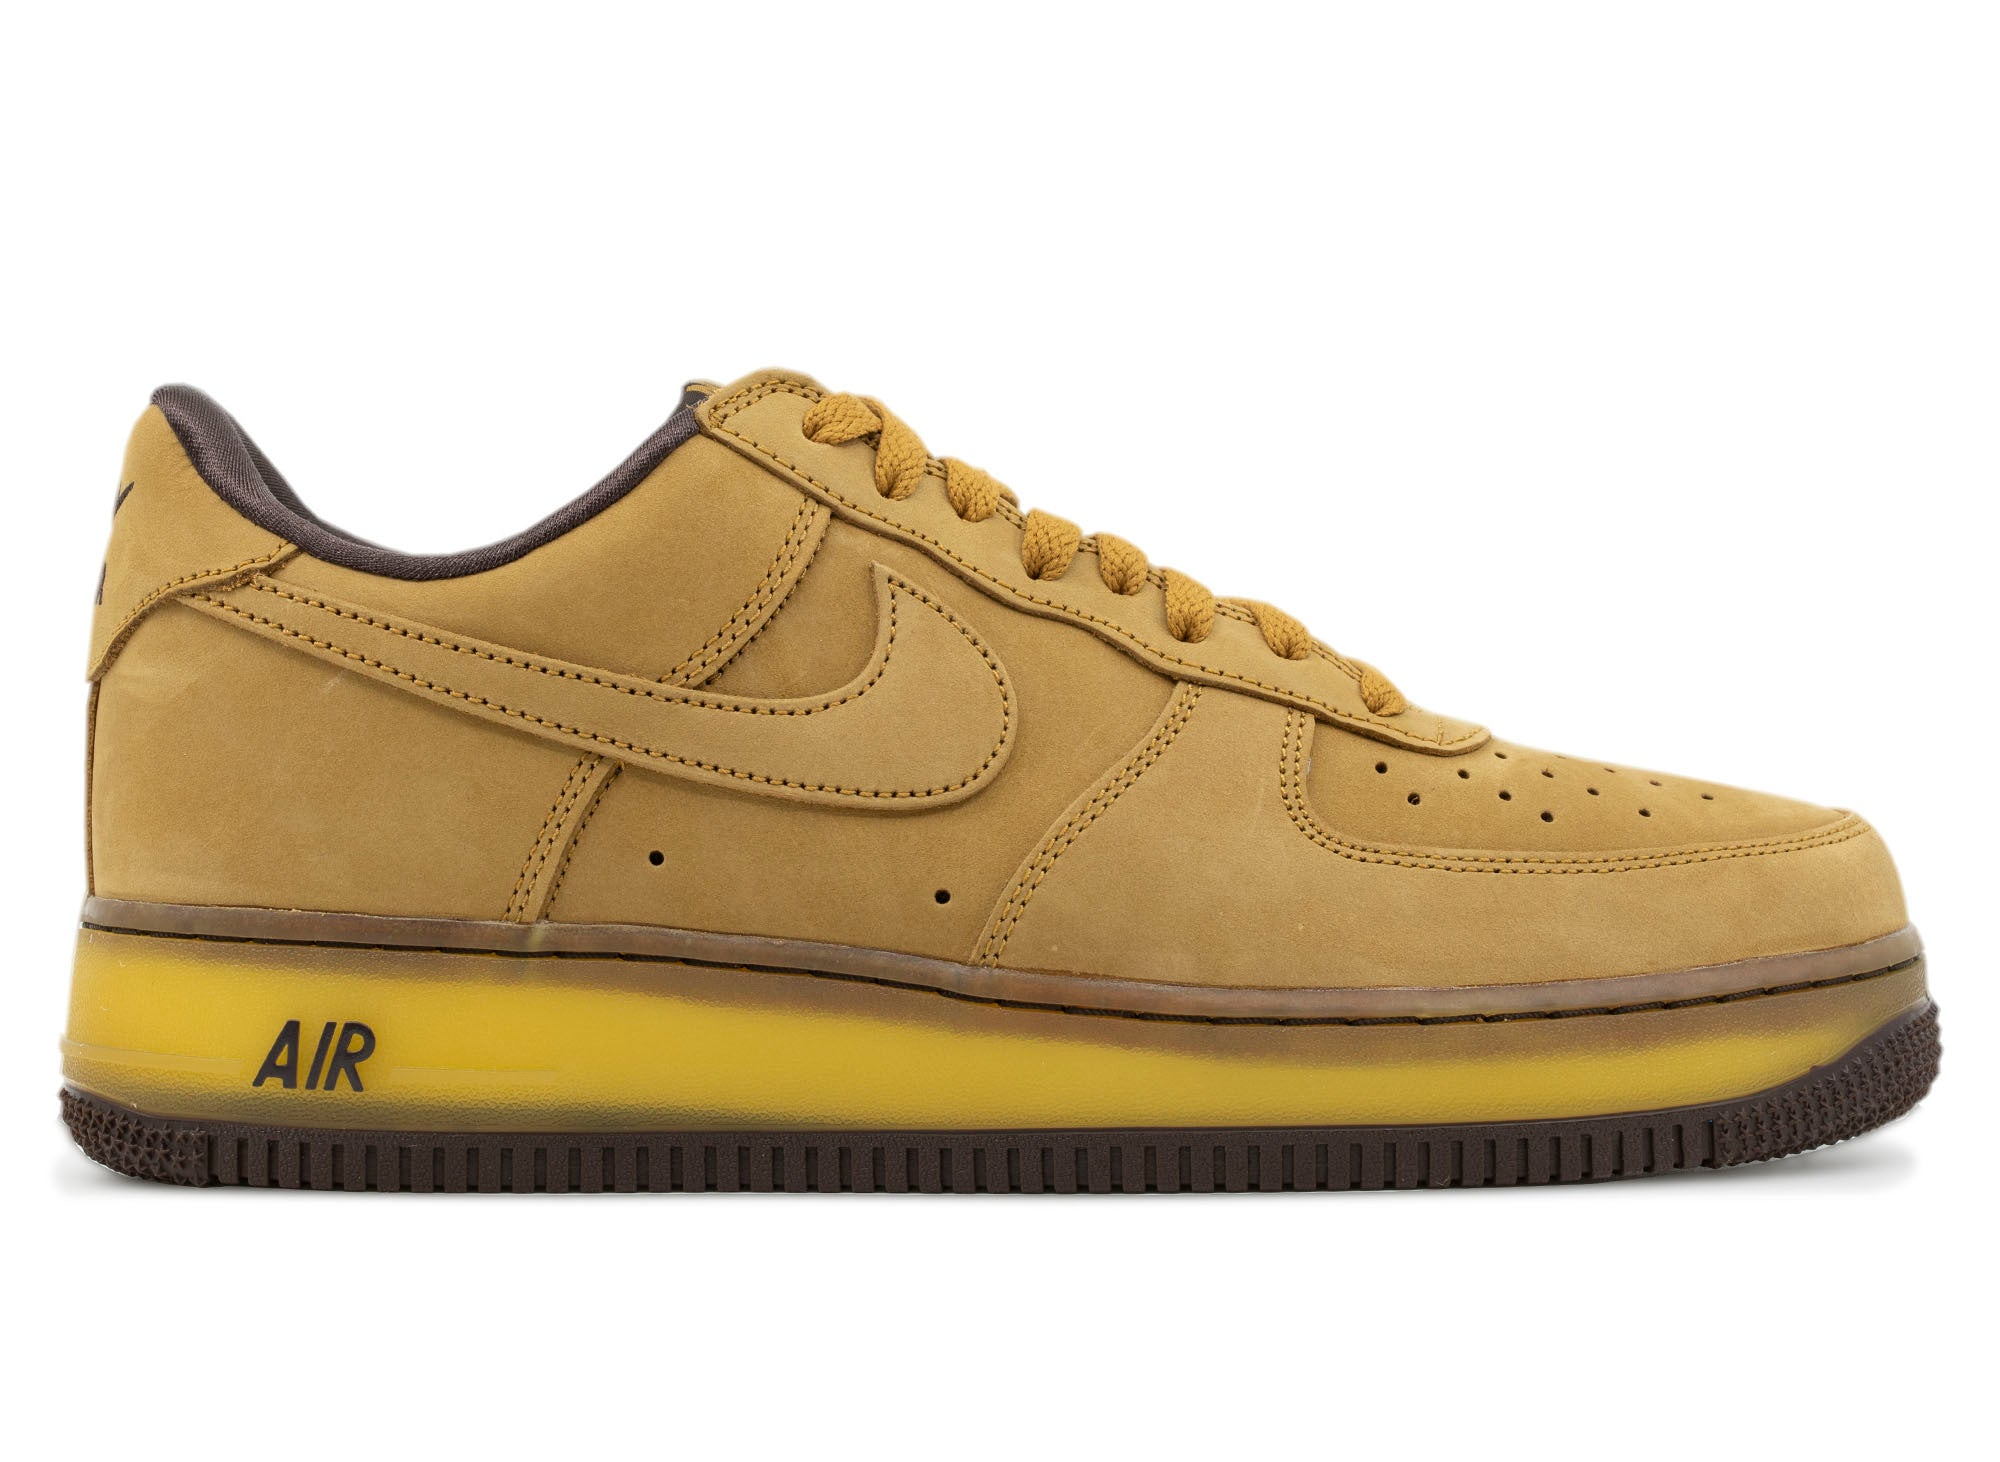 Nike Air Force 1 Low Retro SP 'Wheat' xld